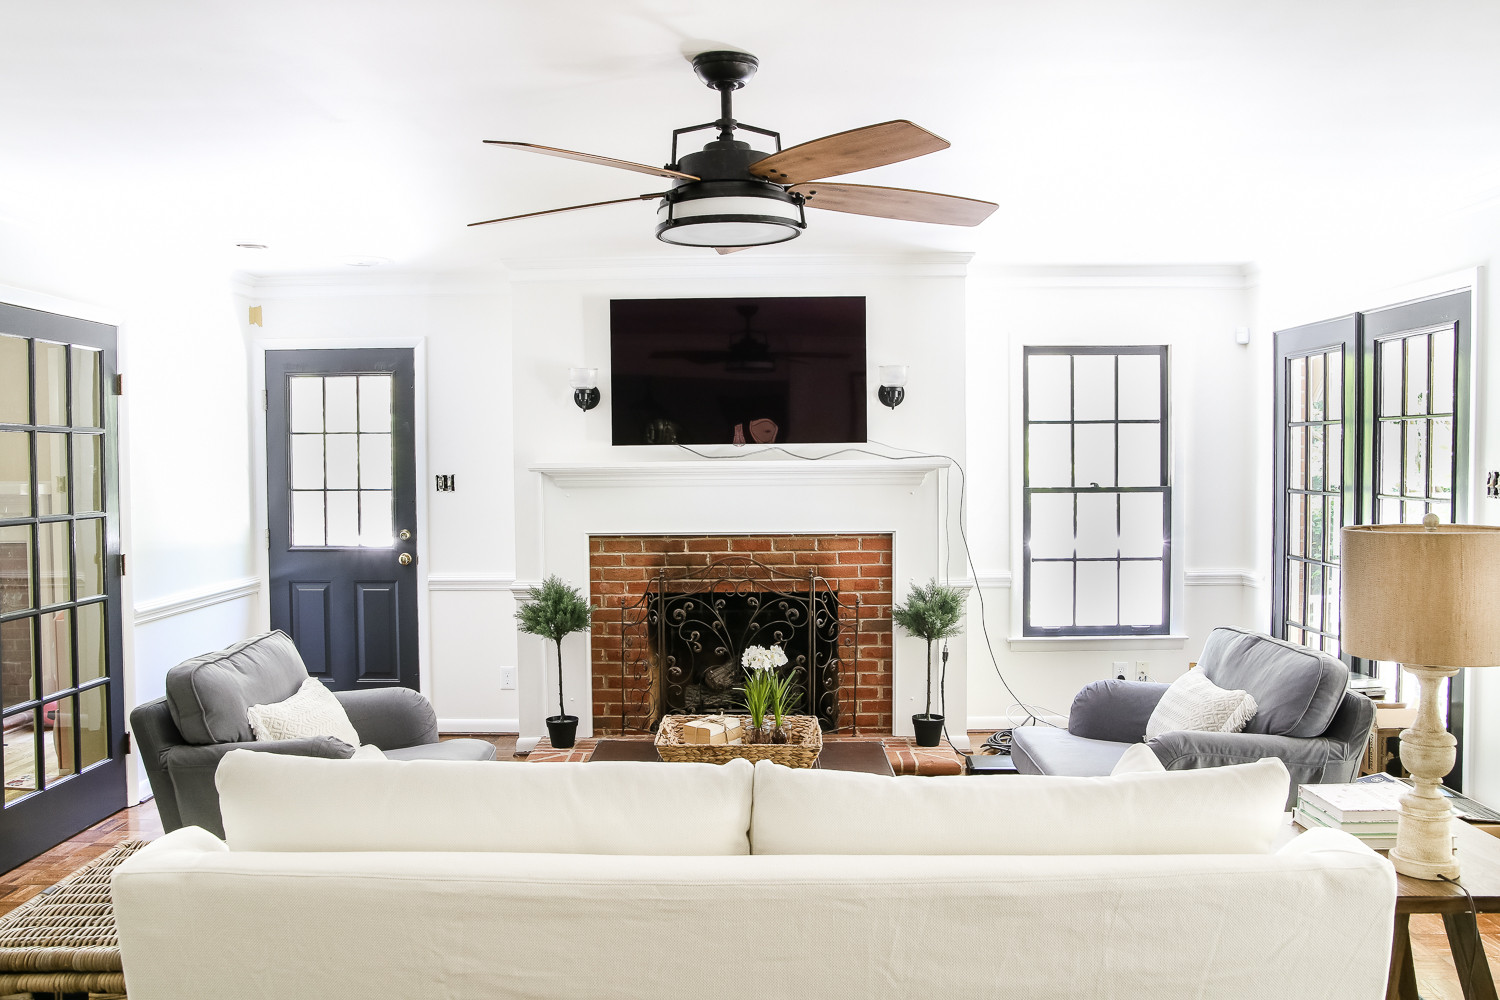 Best ideas about Living Room Ceiling Fan . Save or Pin Living Room Update Ceiling Fan Swap Bless er House Now.